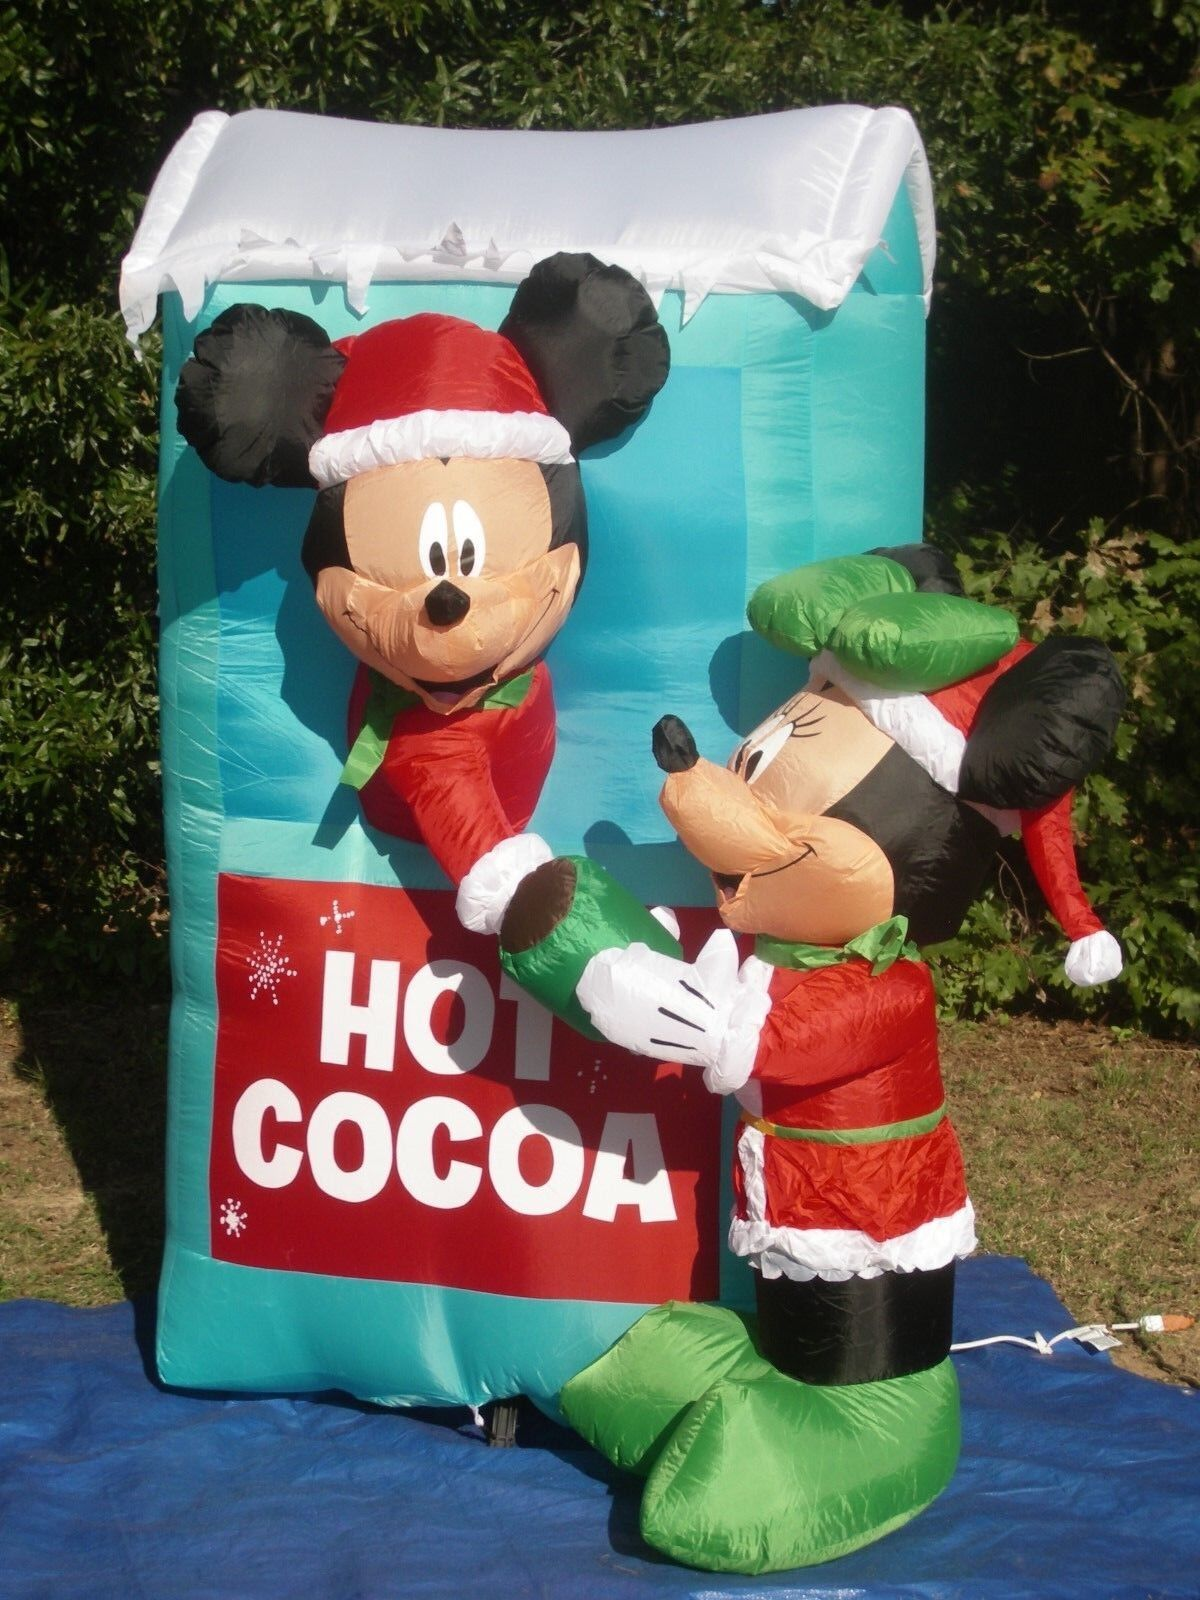 6' Lighted Christmas Disney Mickey Minnie Hot Cocoa Stand Inflatable Airblown